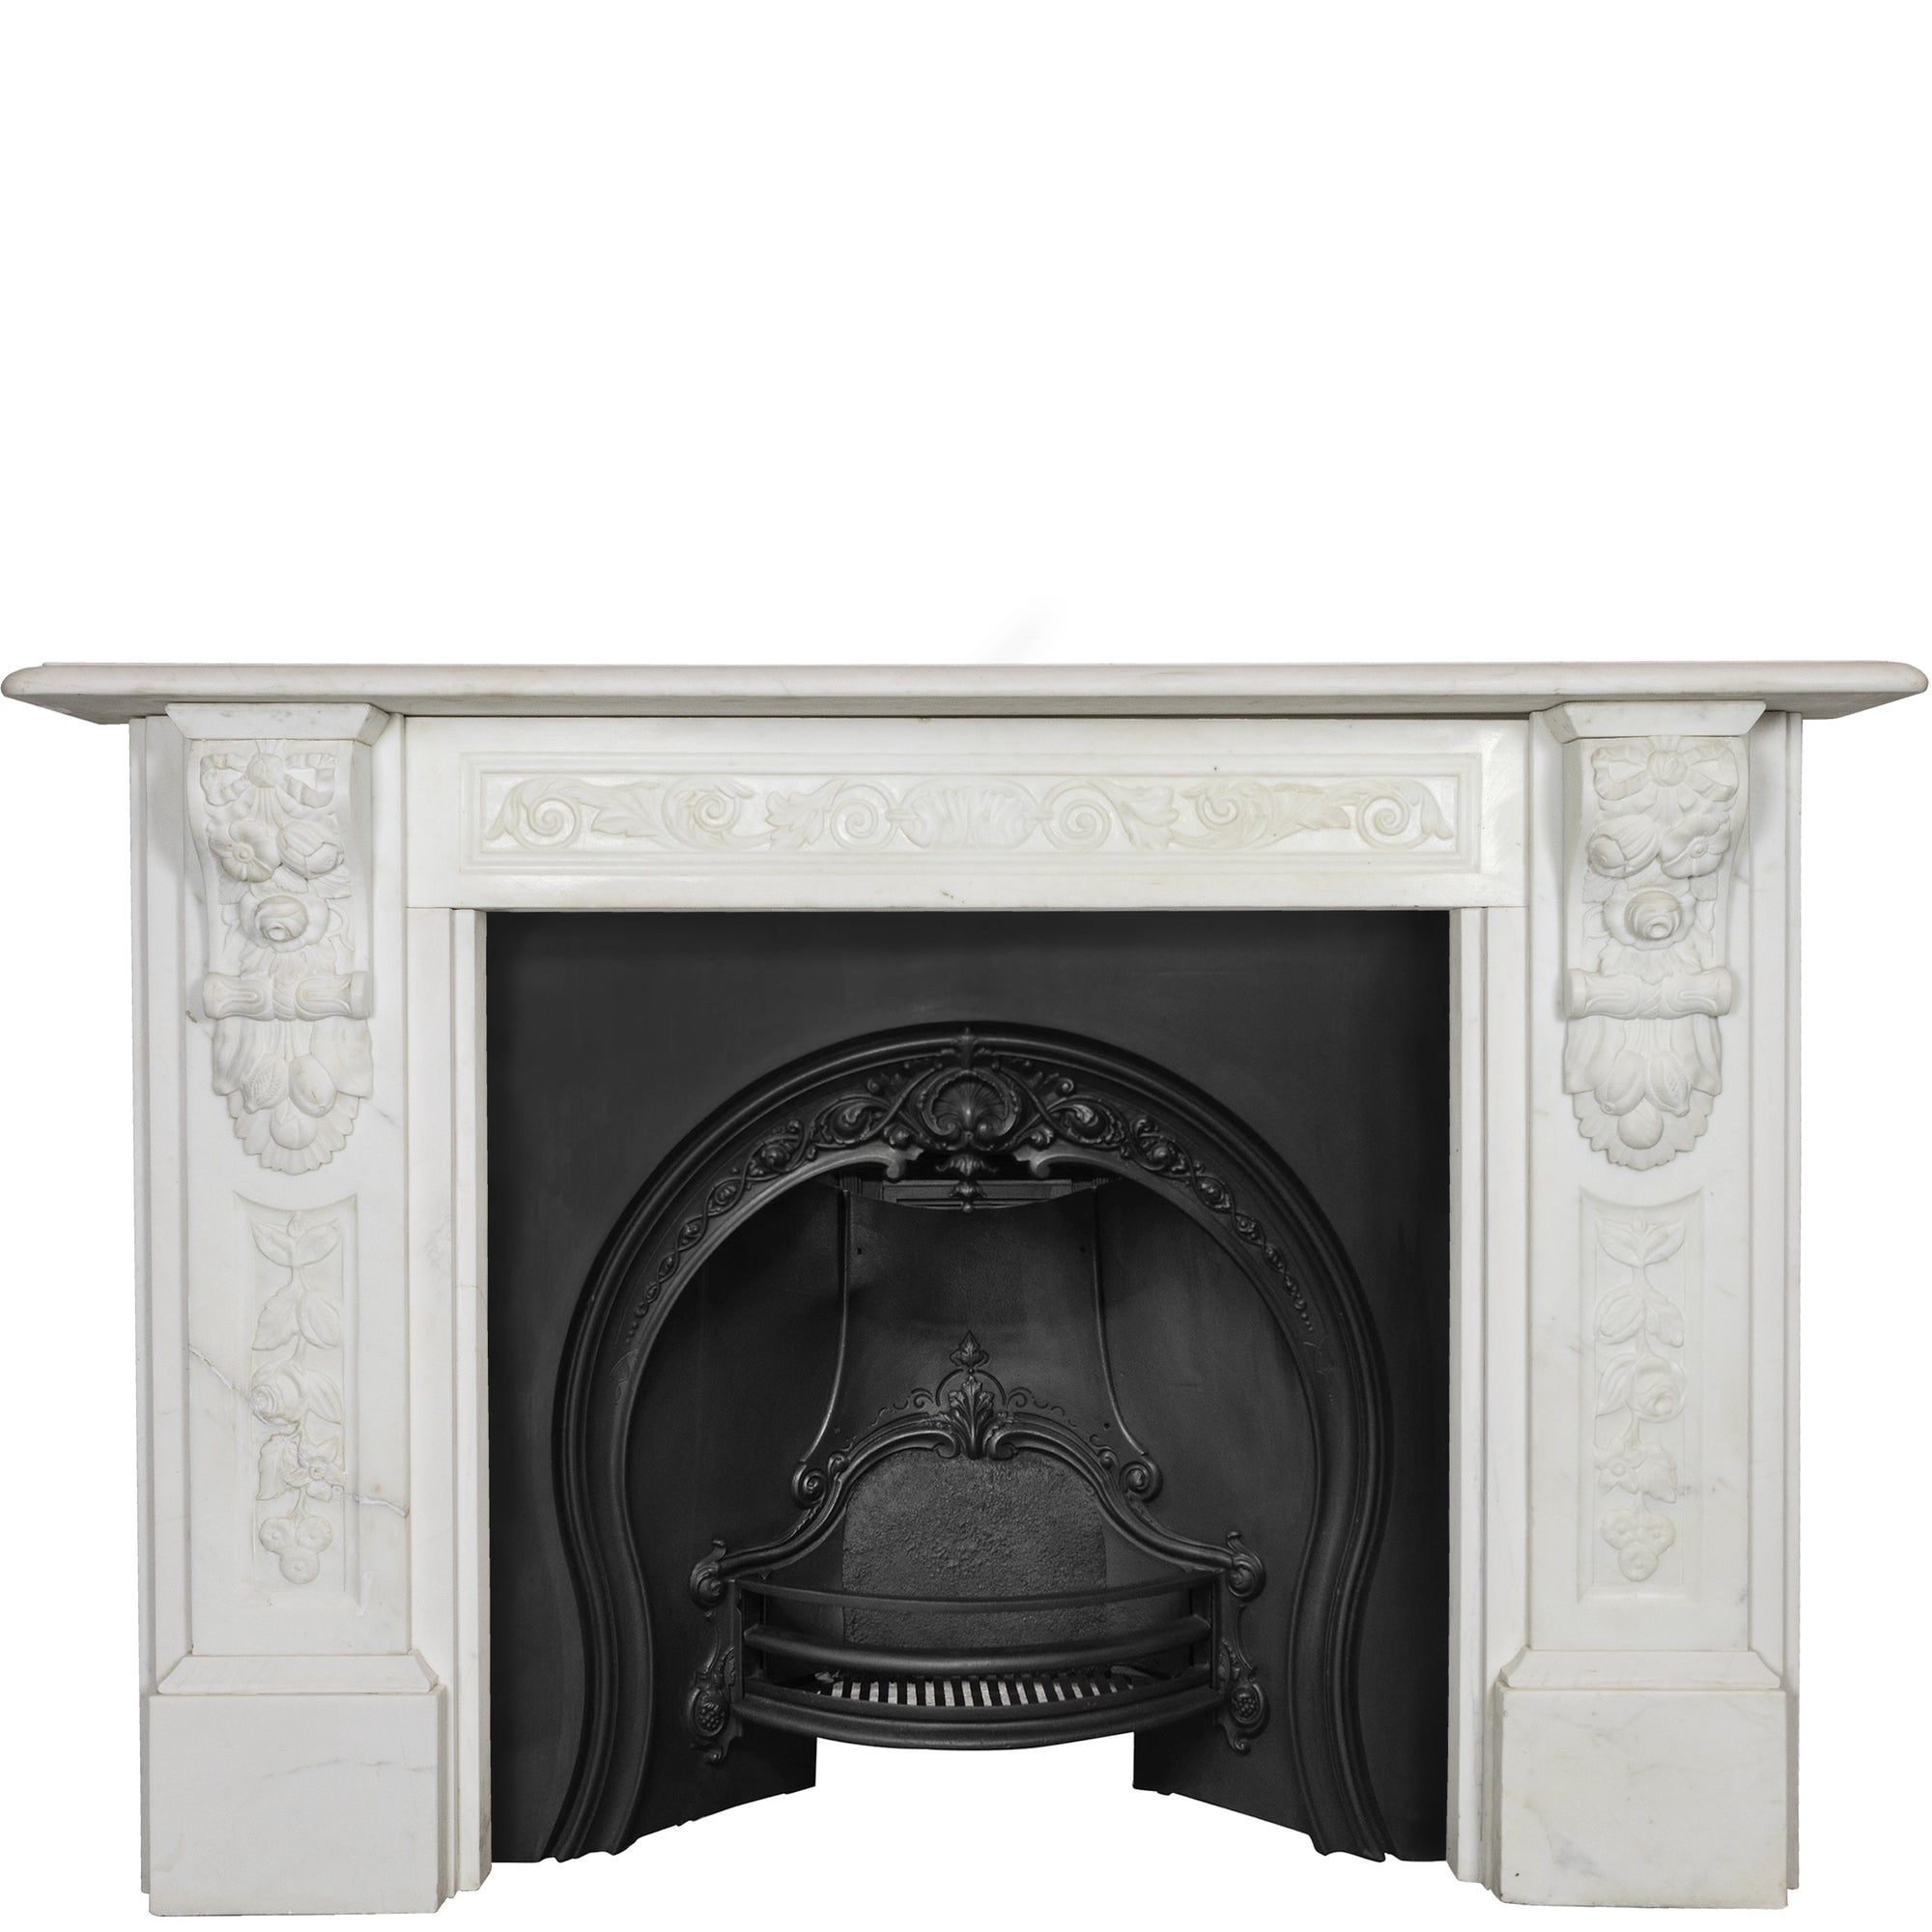 Reclaimed Victorian Style Carved Marble Fireplace Surround